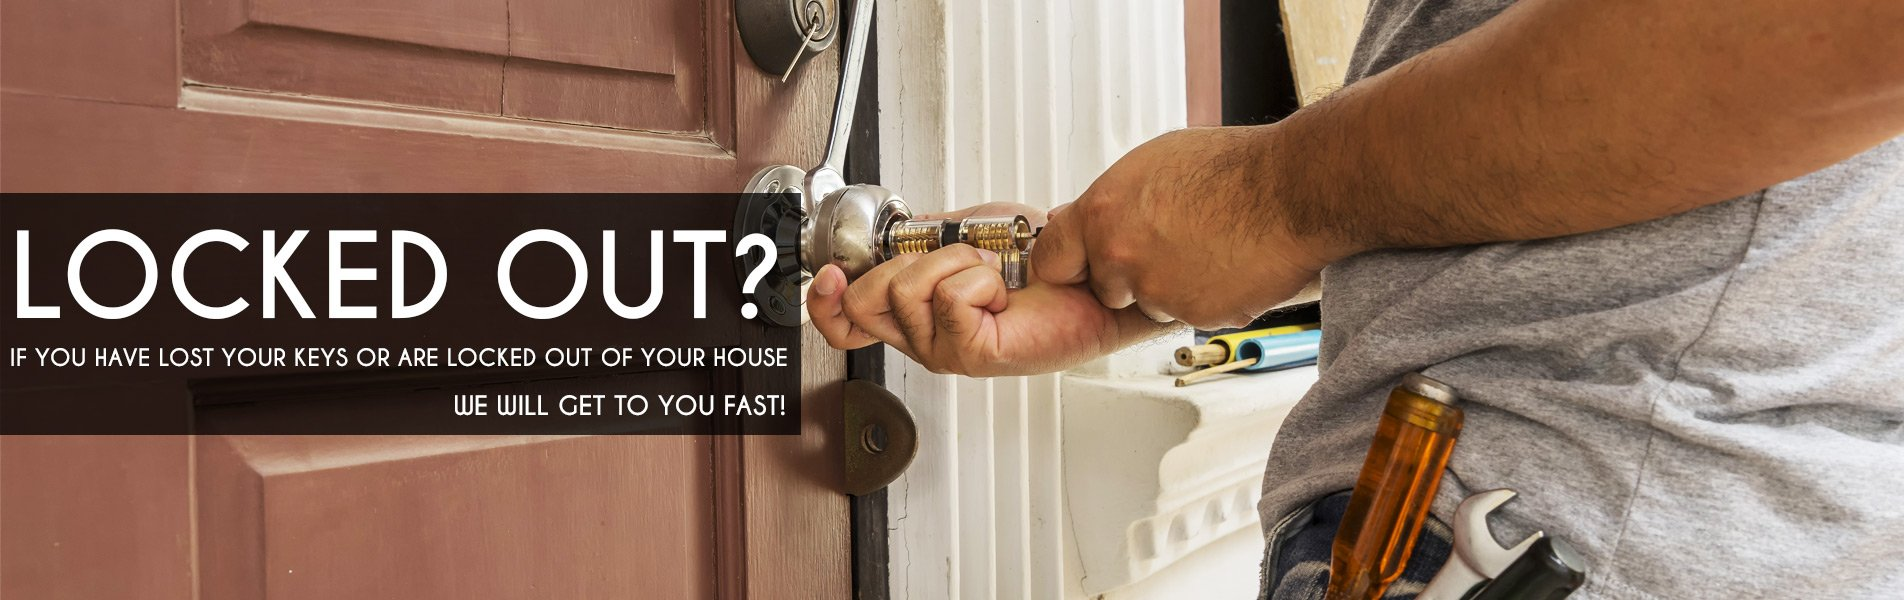 Totowa NJ Locksmith Store Totowa, NJ 973-436-4209